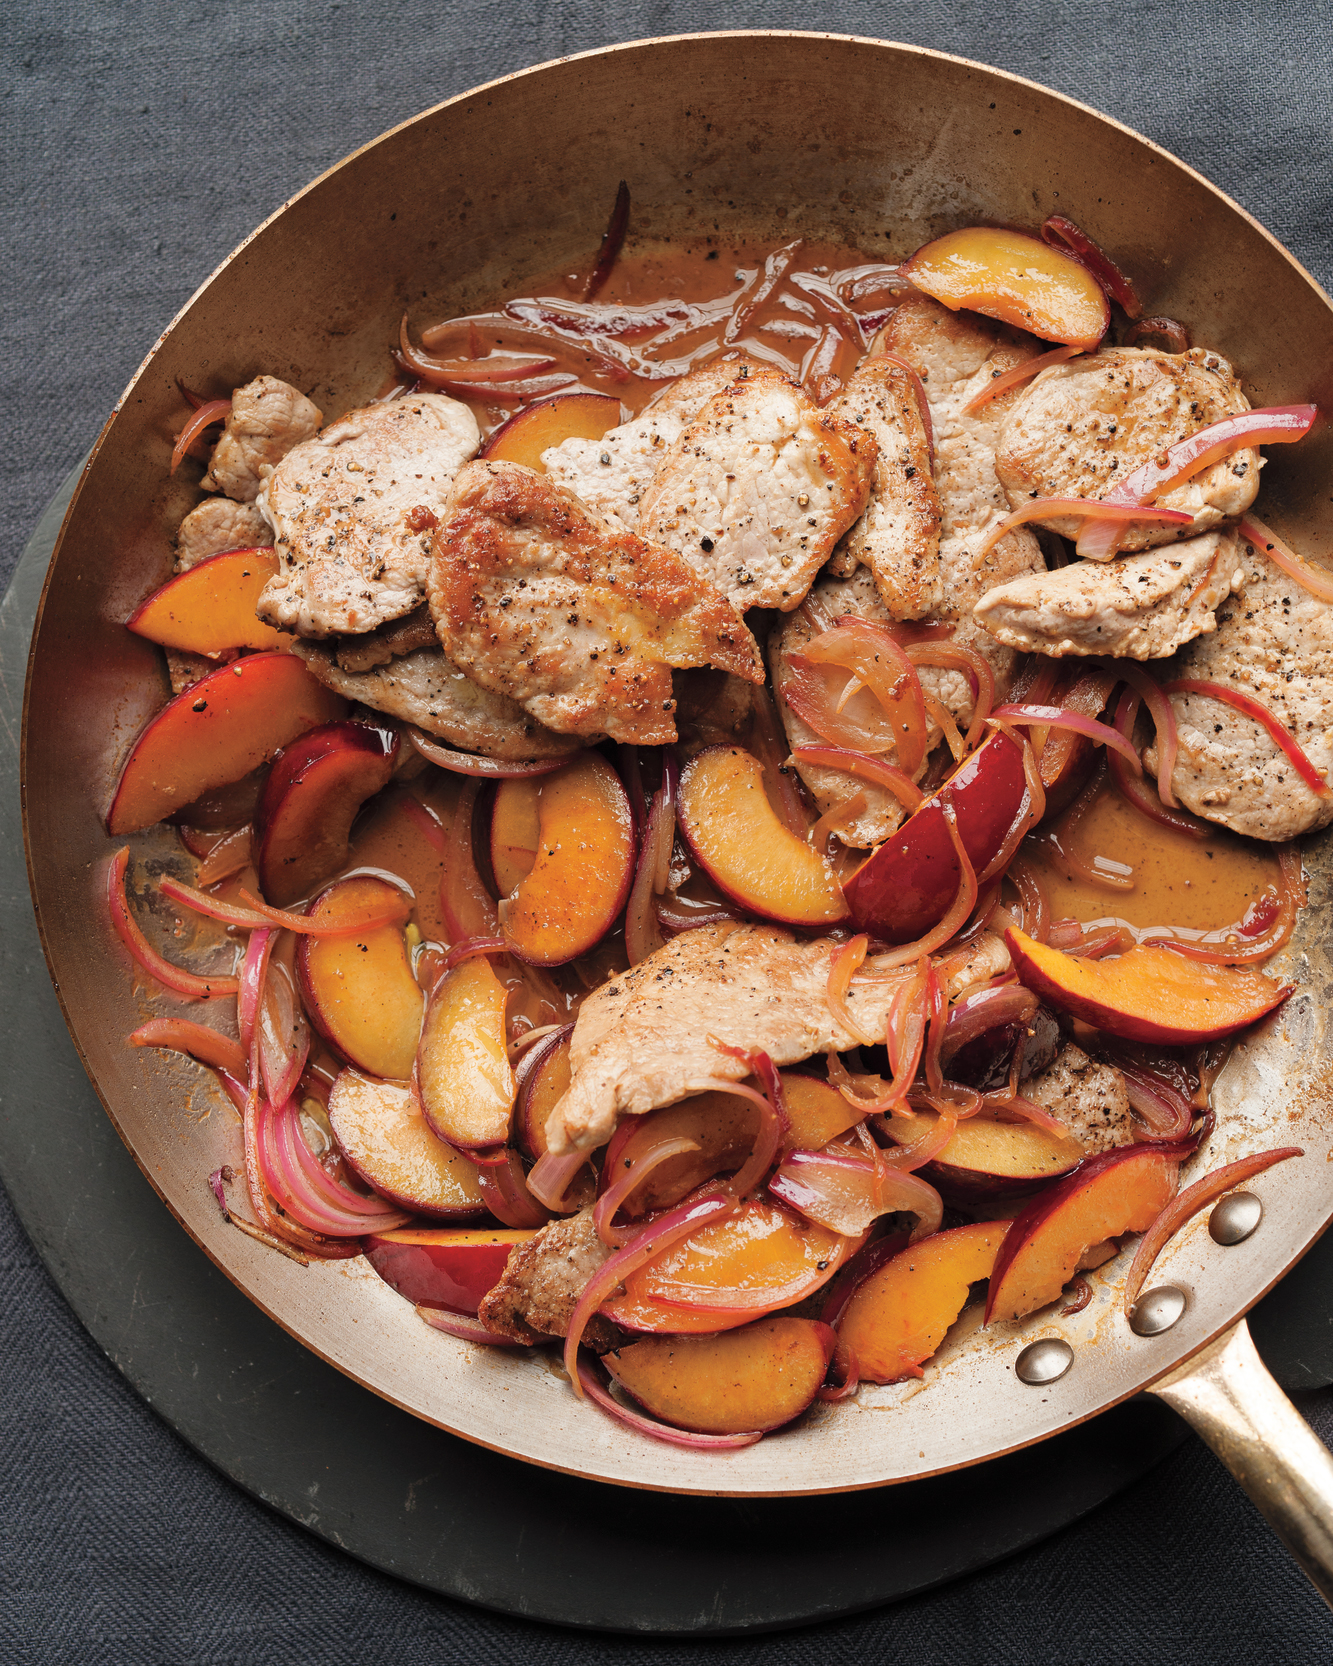 Pork and Plums